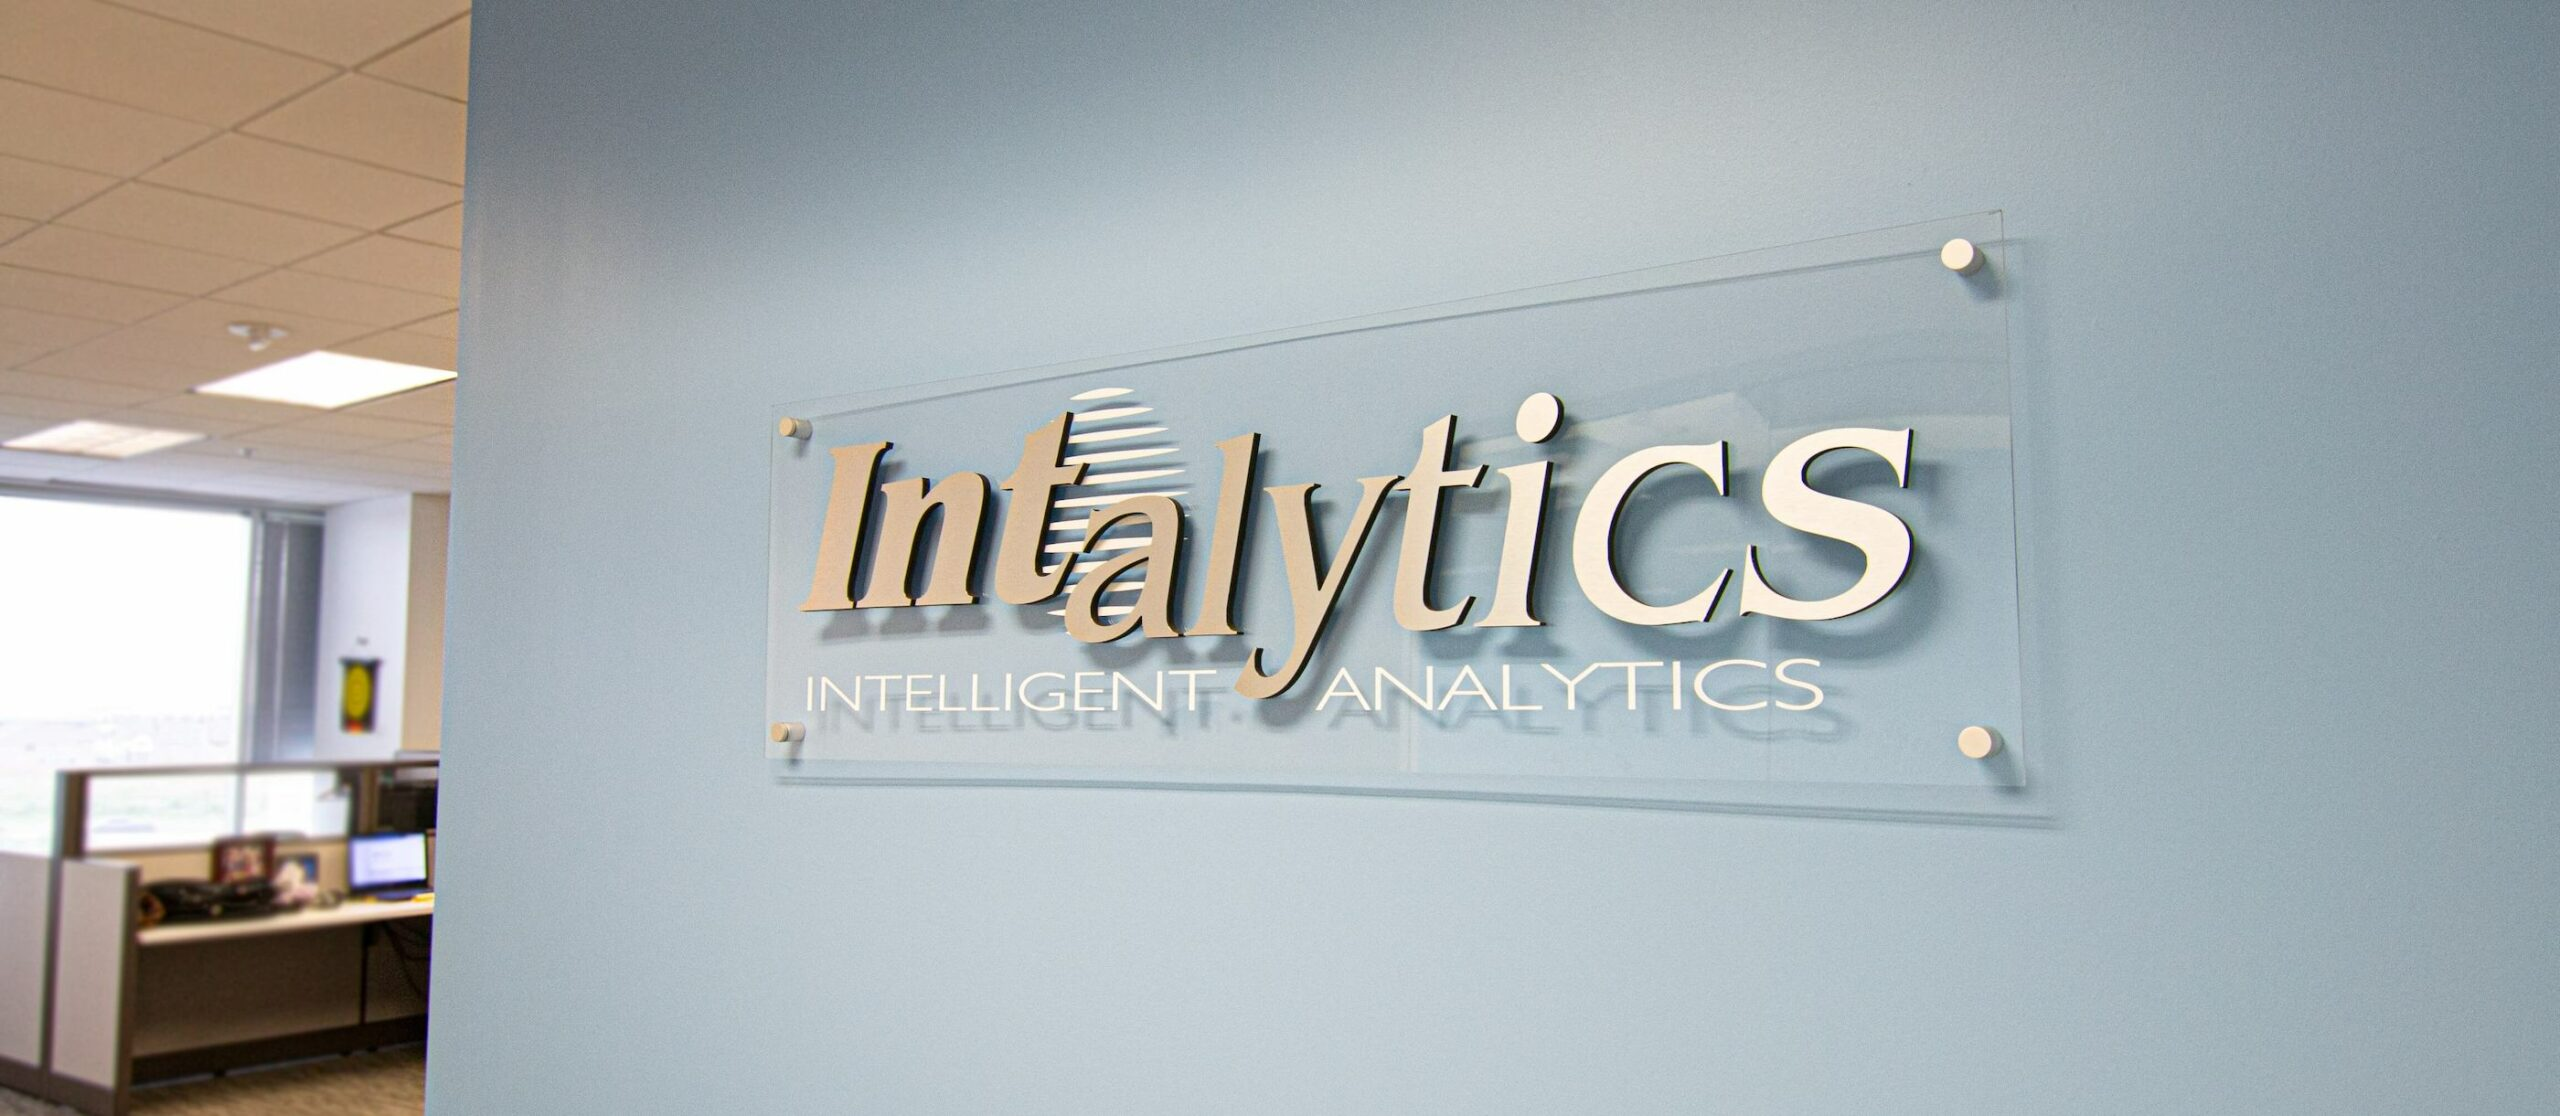 The Intalytics sign in the entry way of the Intalytics office.